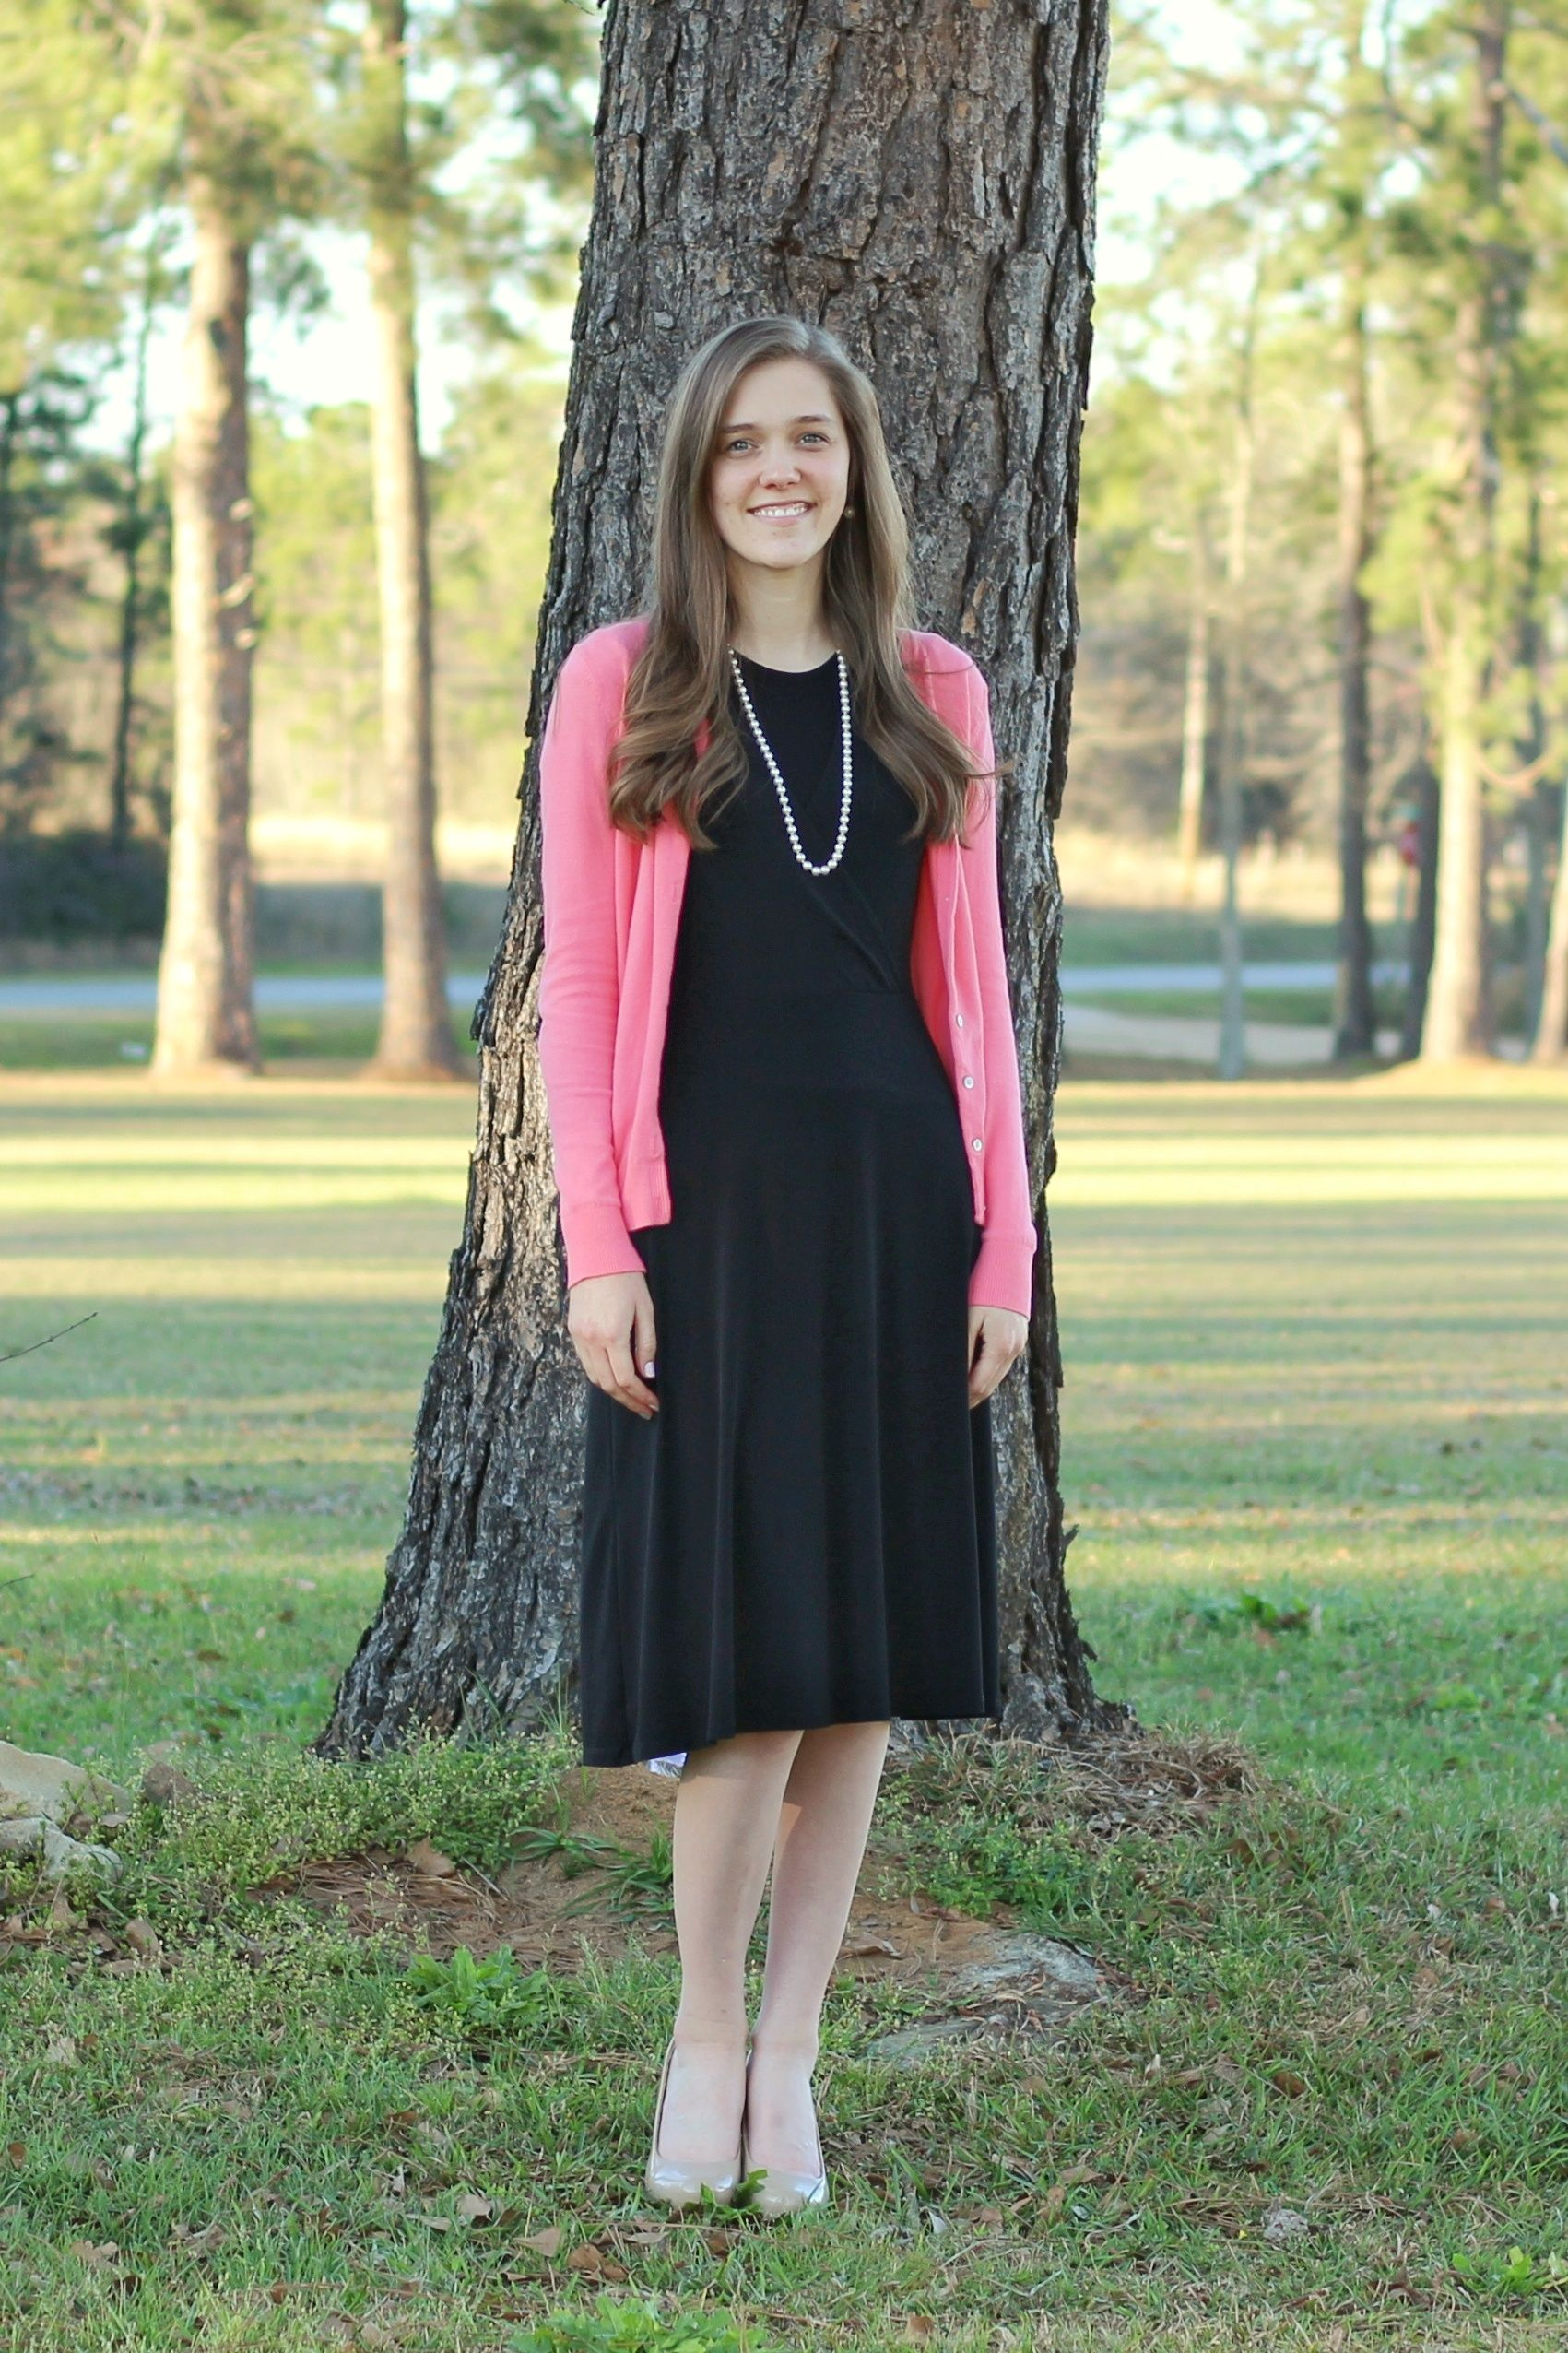 Modest Outfit For Church Black Dress Coral Cardigan Modest Outfits Modest Dresses Outfits [ 2552 x 1701 Pixel ]